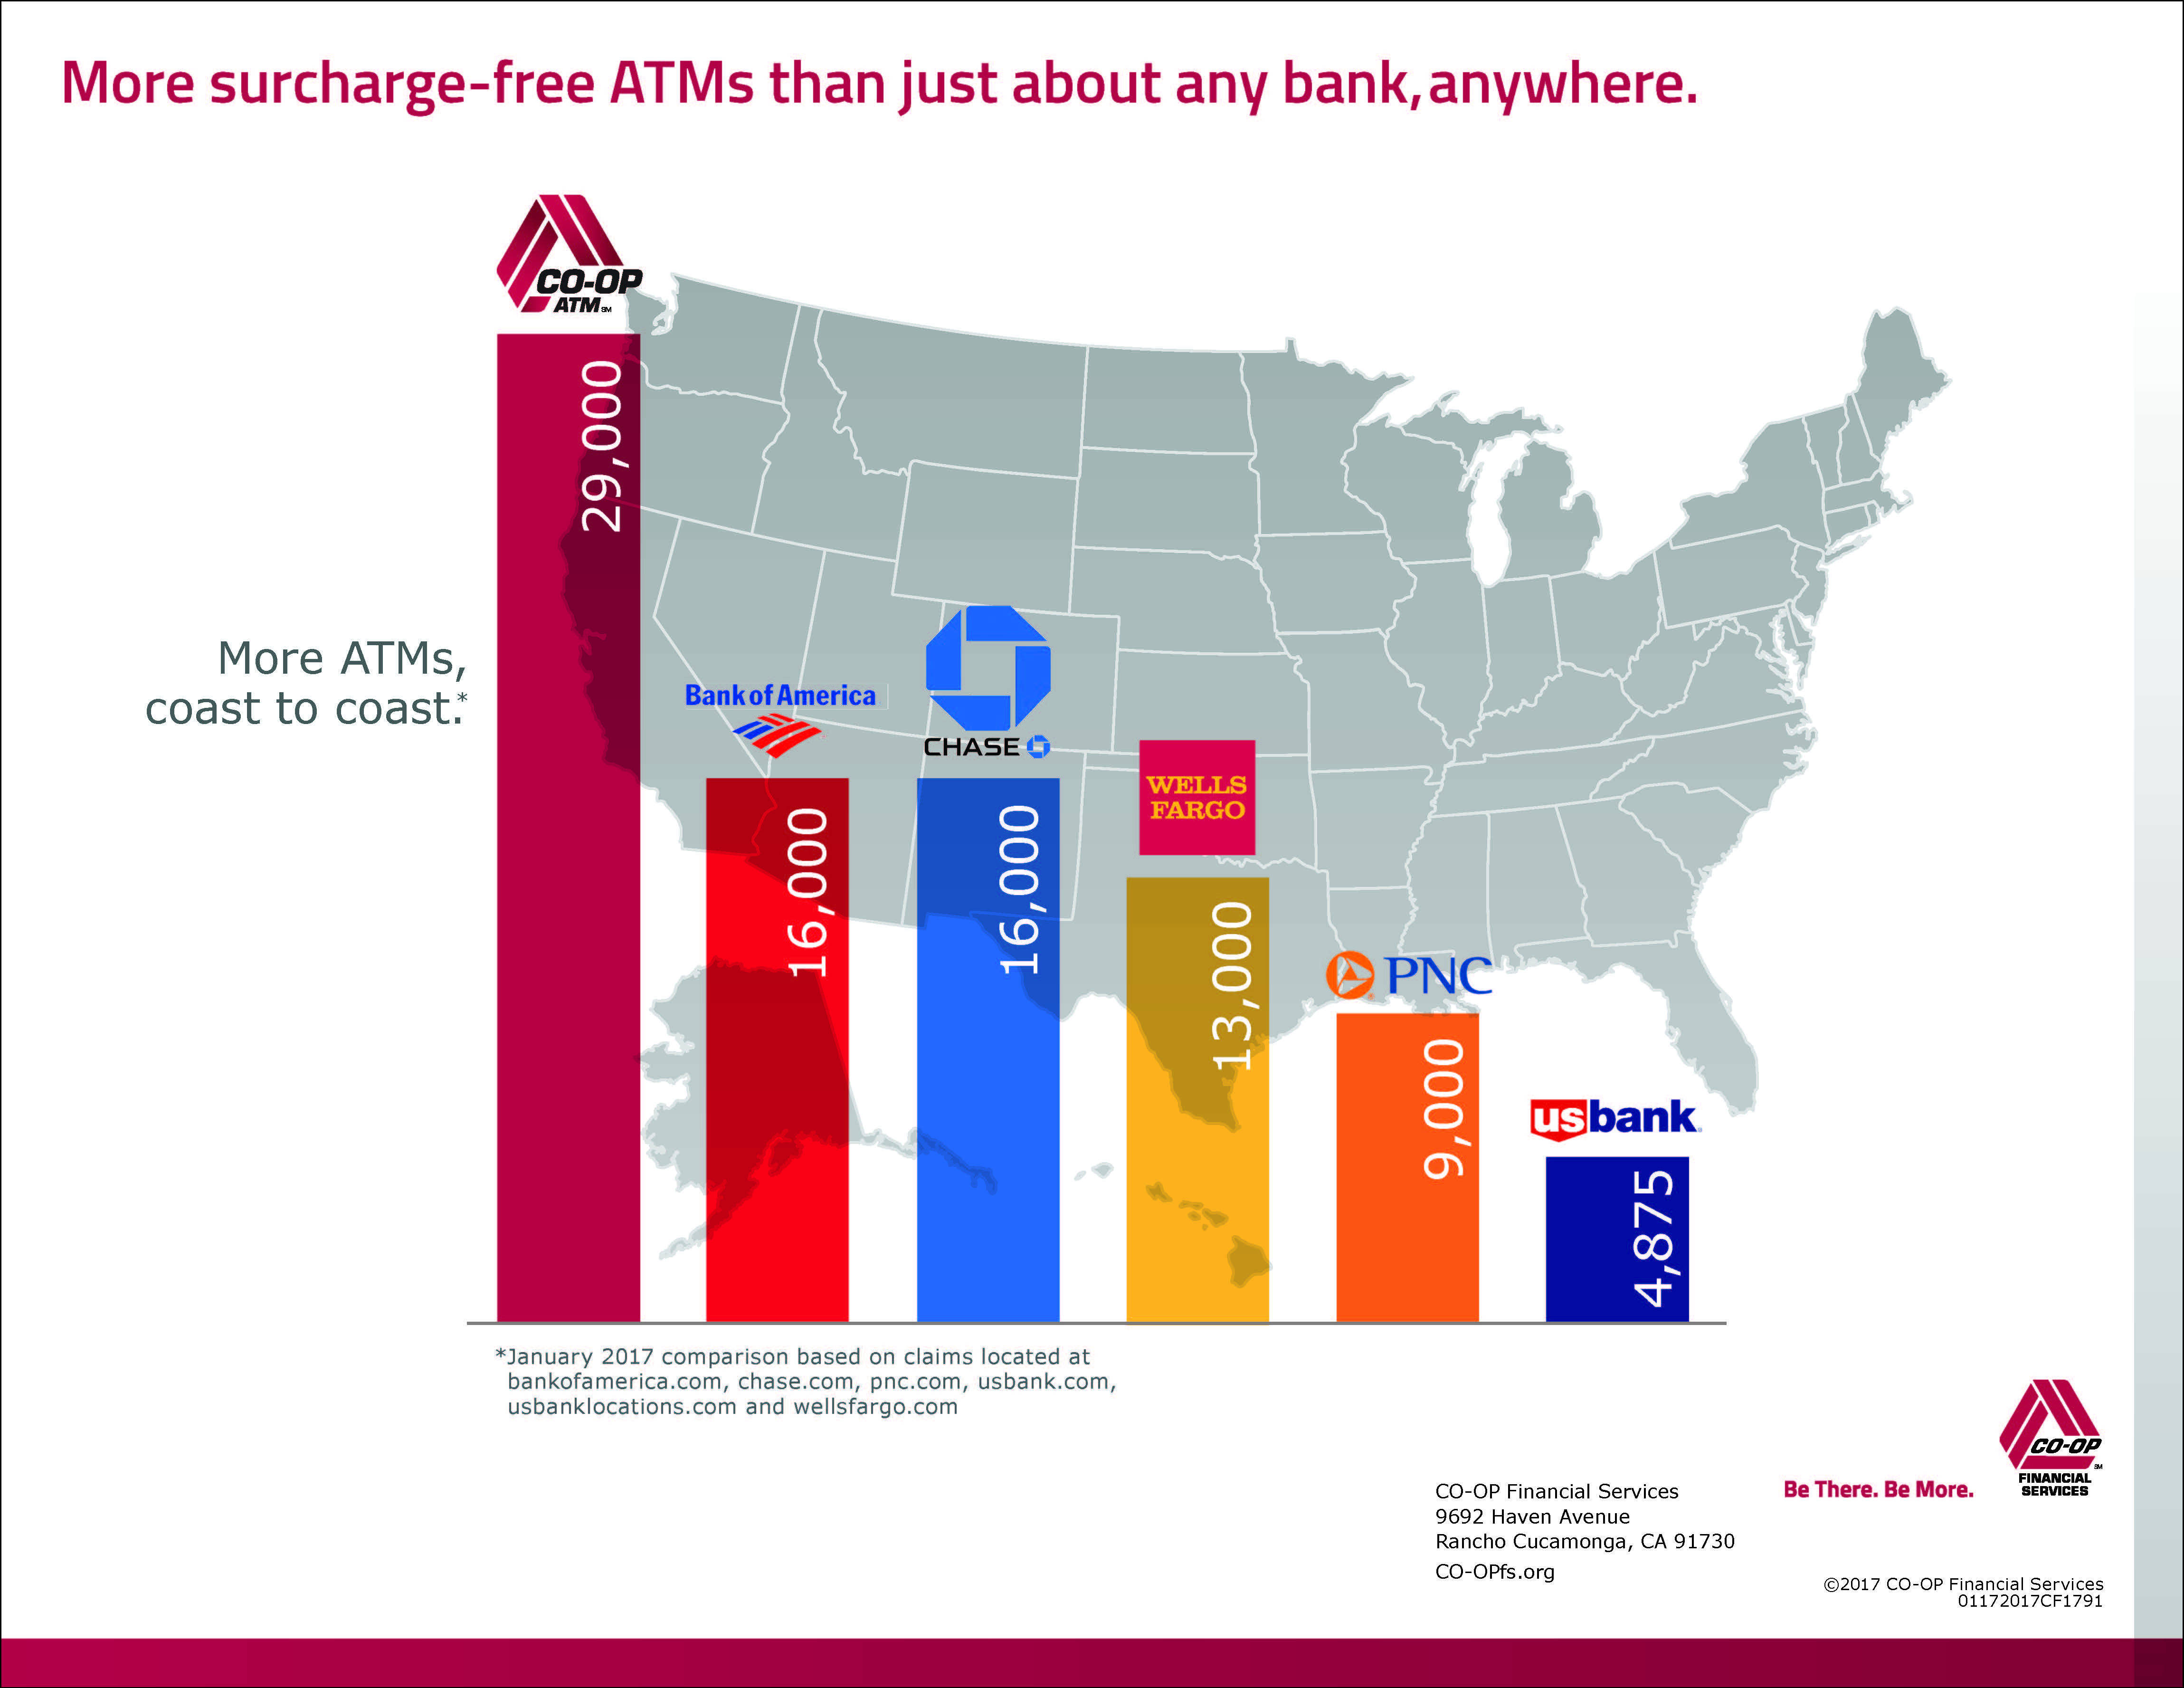 The CO-OP network has more surcharge-free ATMs than just about any bank, anywhere. Based on January 2017 comparisons the CO-OP ATM network has 29,000 fee-free ATMs while Bank of America has 16,000, Chase has 16,000, Wells Fargo has 13,000, PNC has 9,000 and US Bank has 4,875. The comparisons are based on claims located at bankofamerica.com, chase.com, pnc.com, usbank.com, usbanklocations.com and wellsfargo.com.